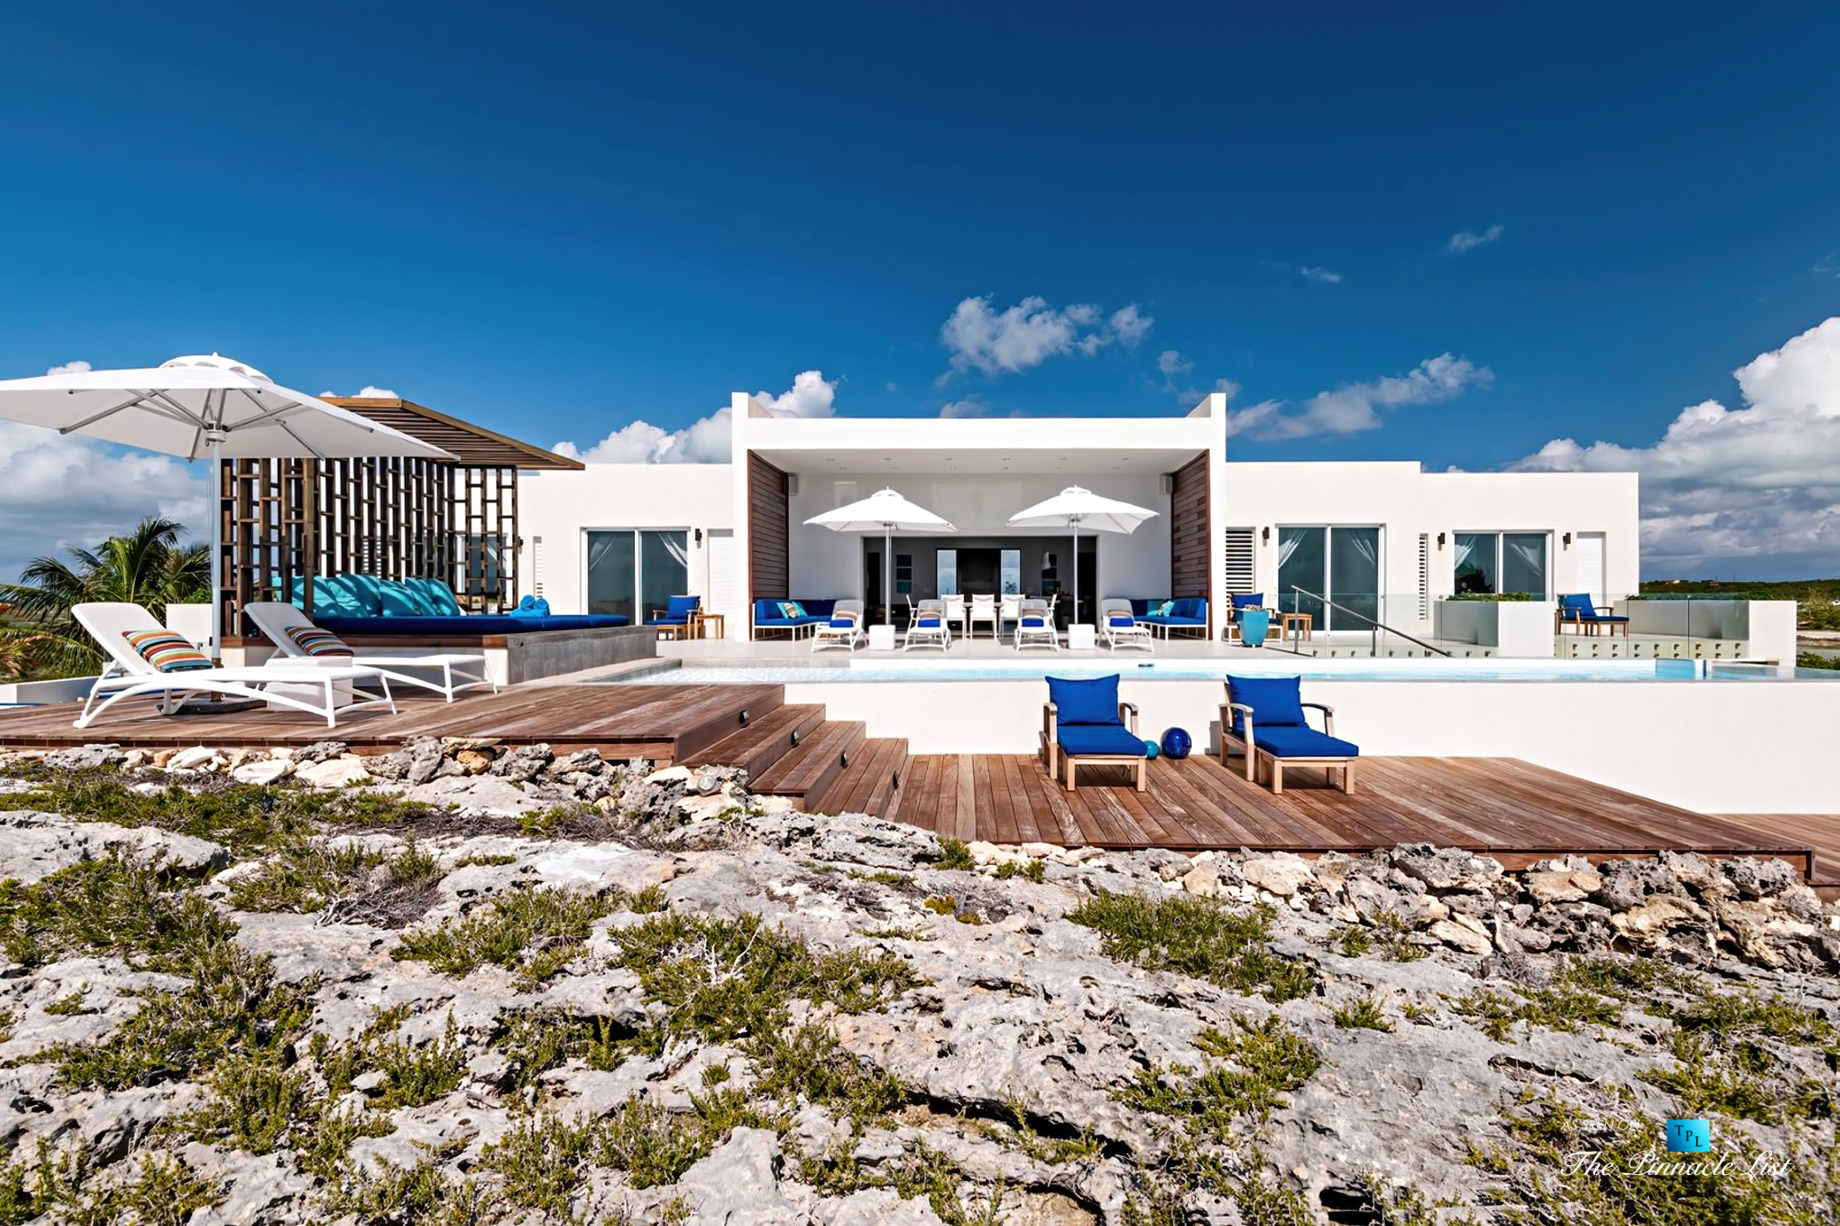 Tip of the Tail Luxury Villa – Providenciales, Turks and Caicos Islands – Exterior Front View